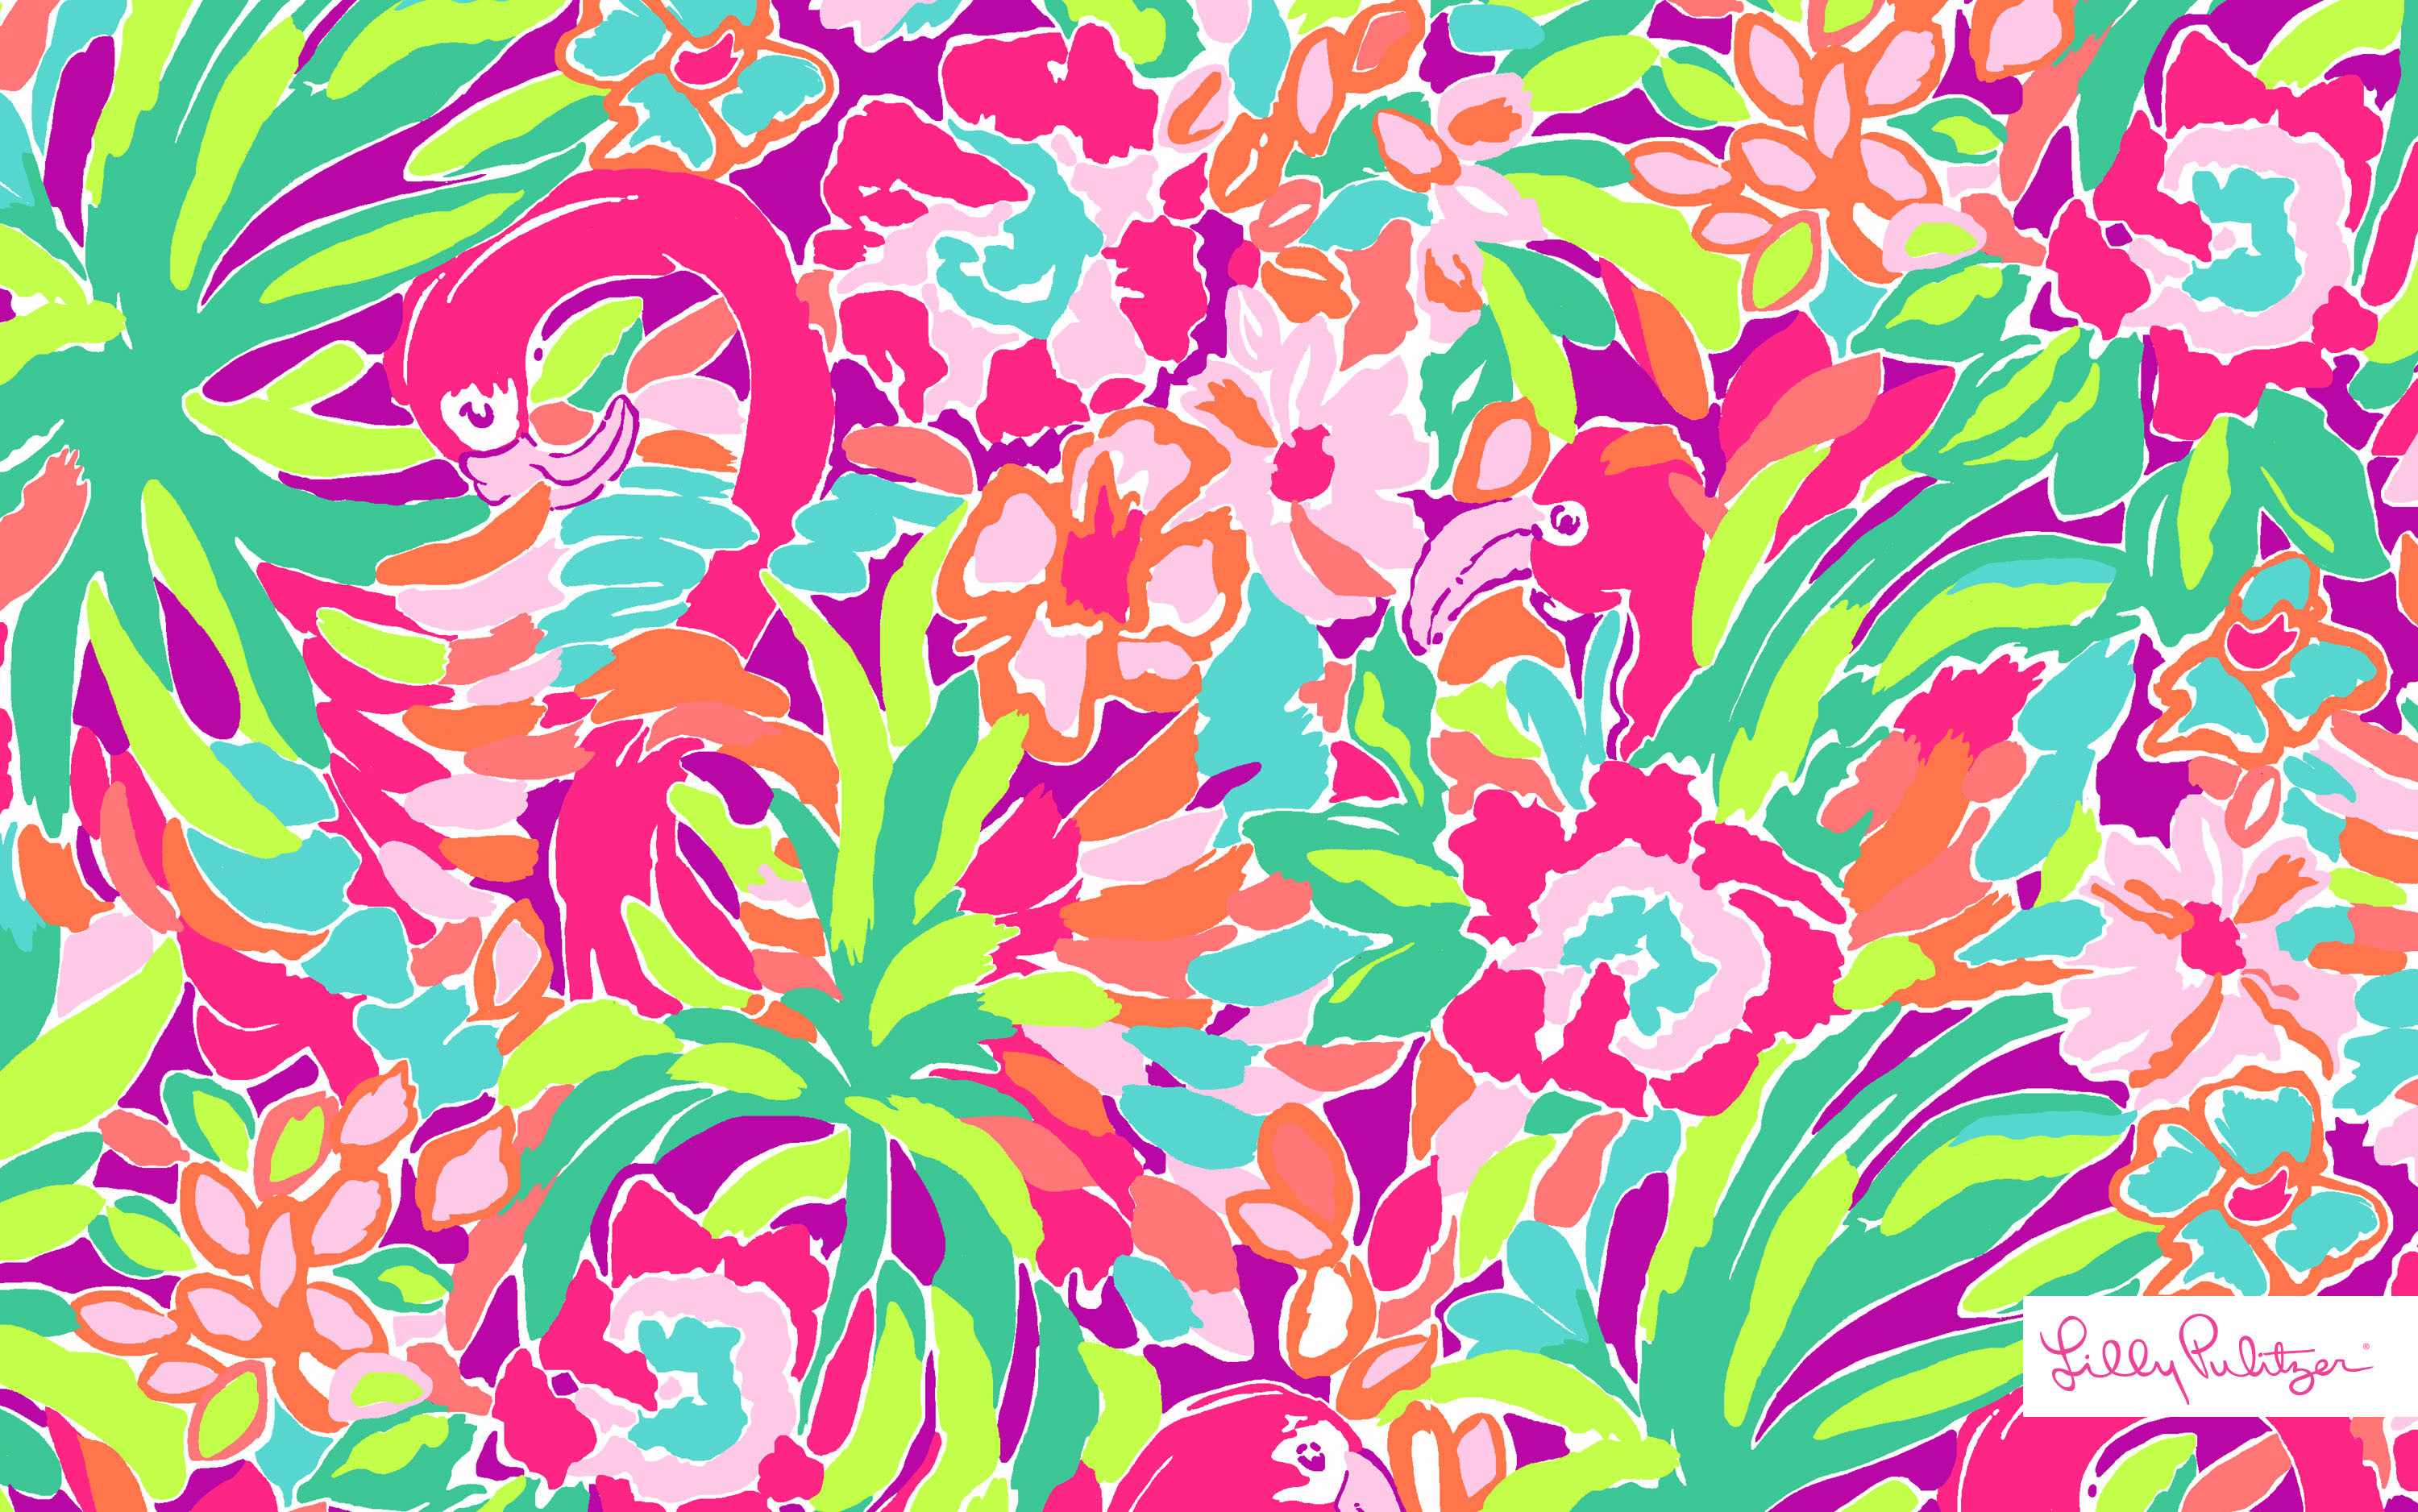 lilly pulitzer prints lilly pulitzer patterns lilly pulitzer patterns .